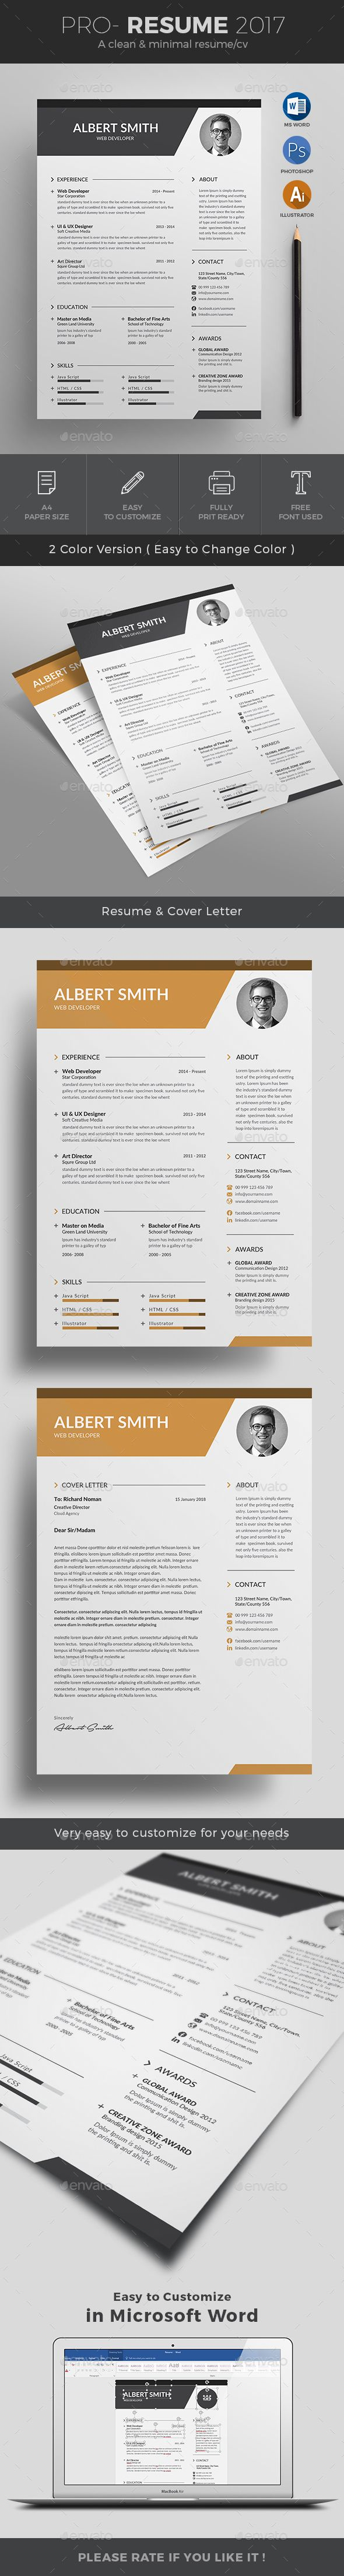 #Resume - Resumes #Stationery Download here: https://graphicriver.net/item/resume/19156235?ref=alena994